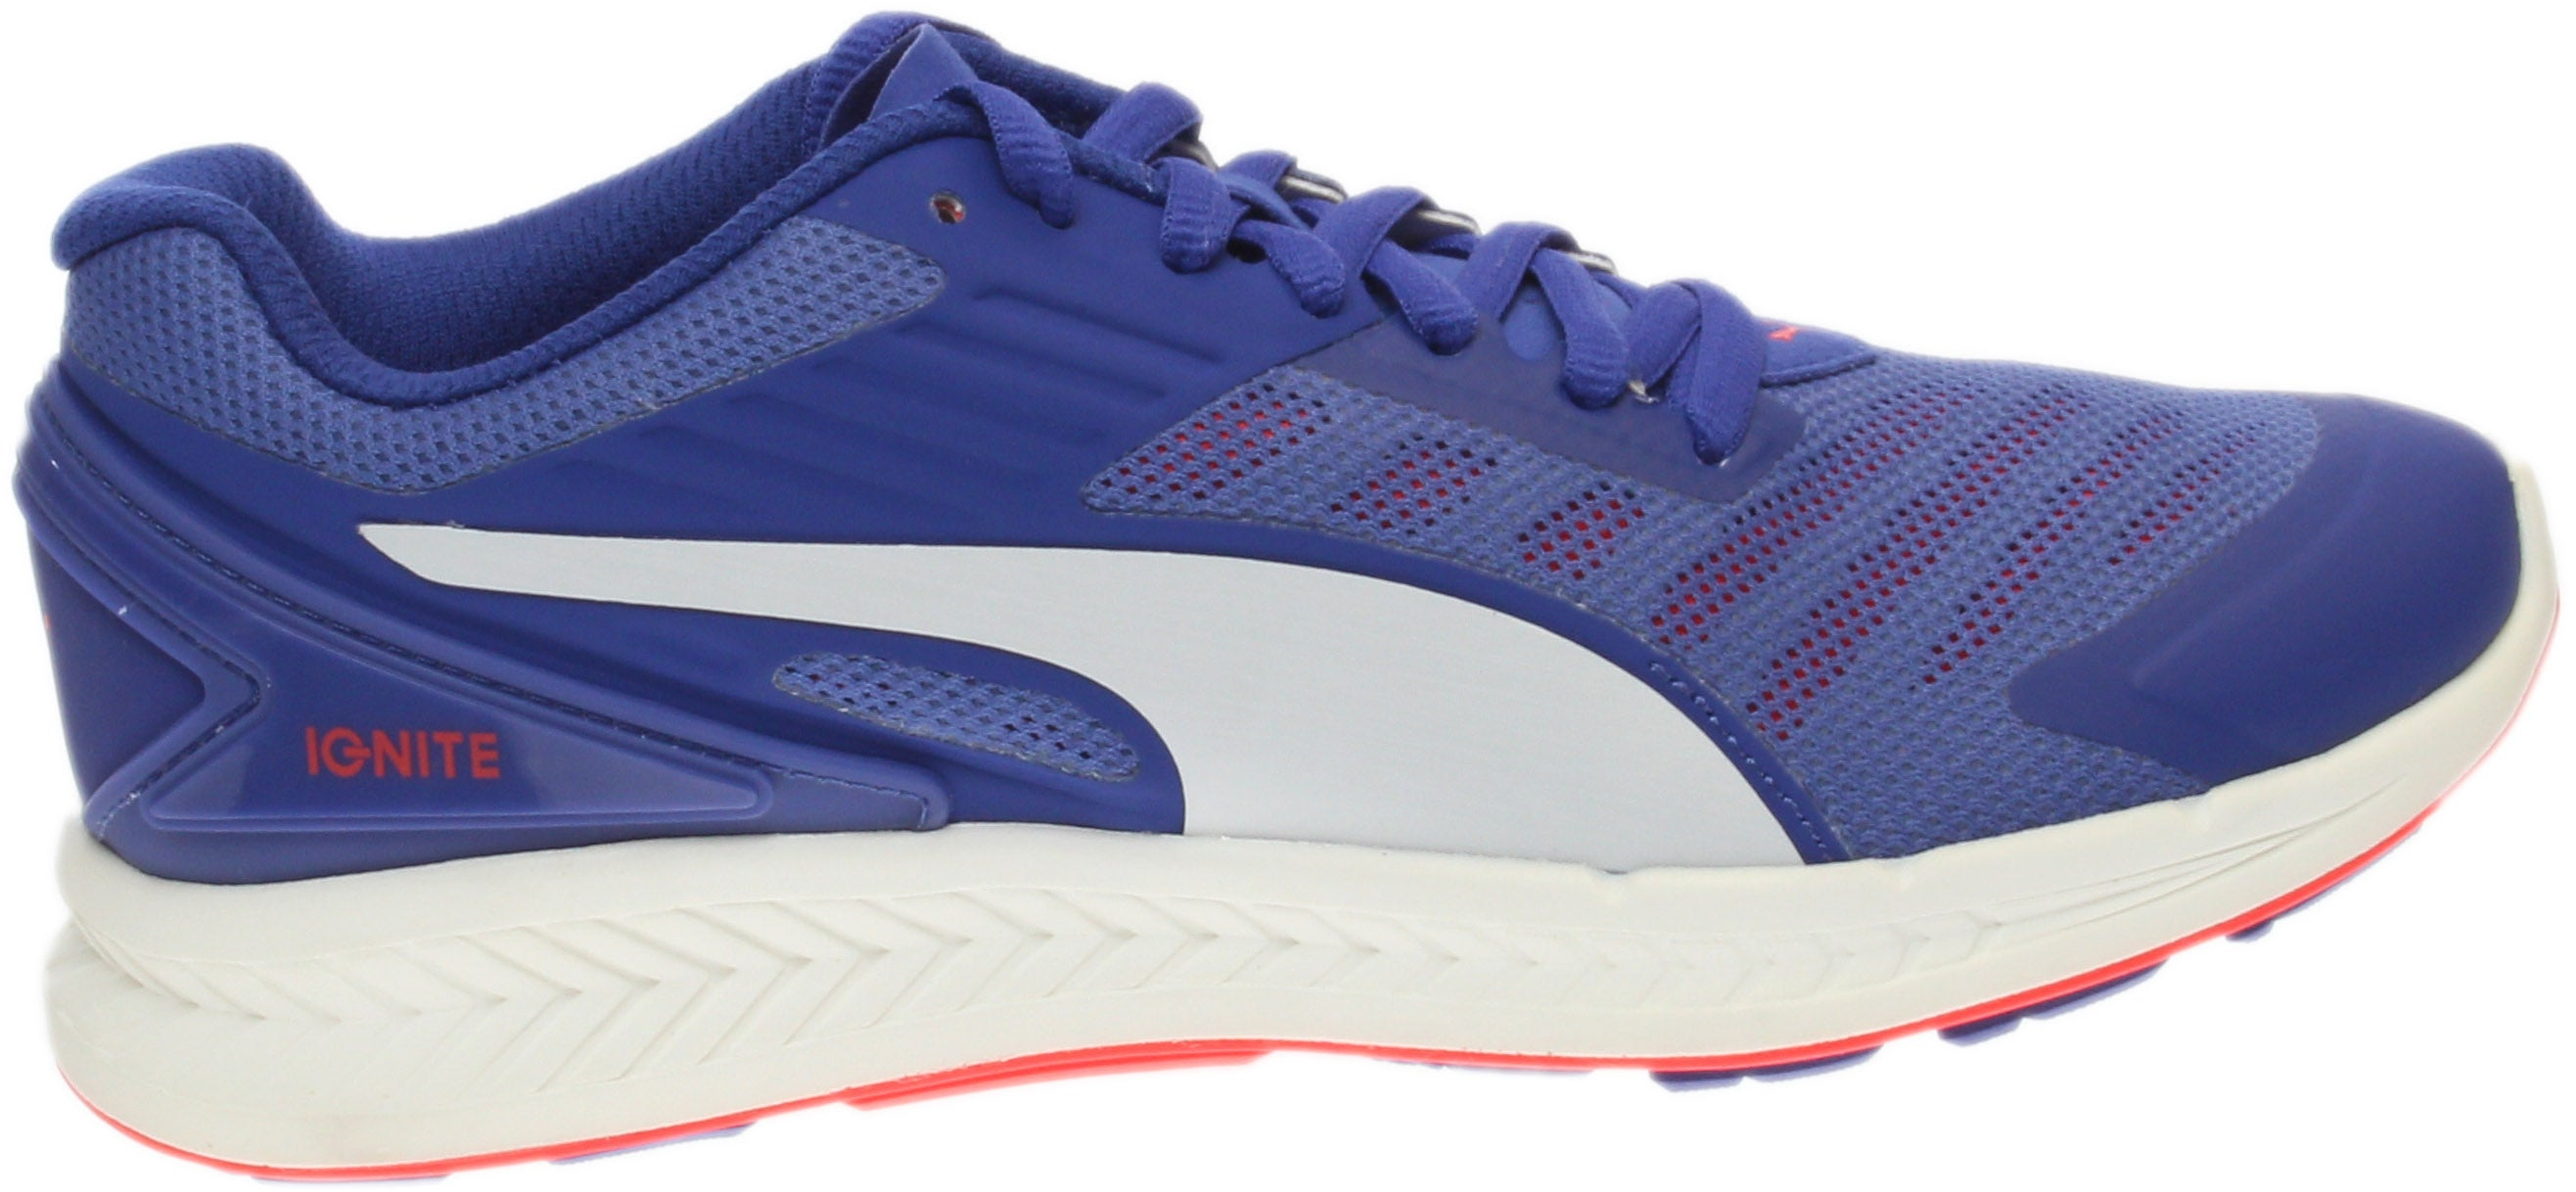 Puma Ignite v2 W Blue - Womens  - Size